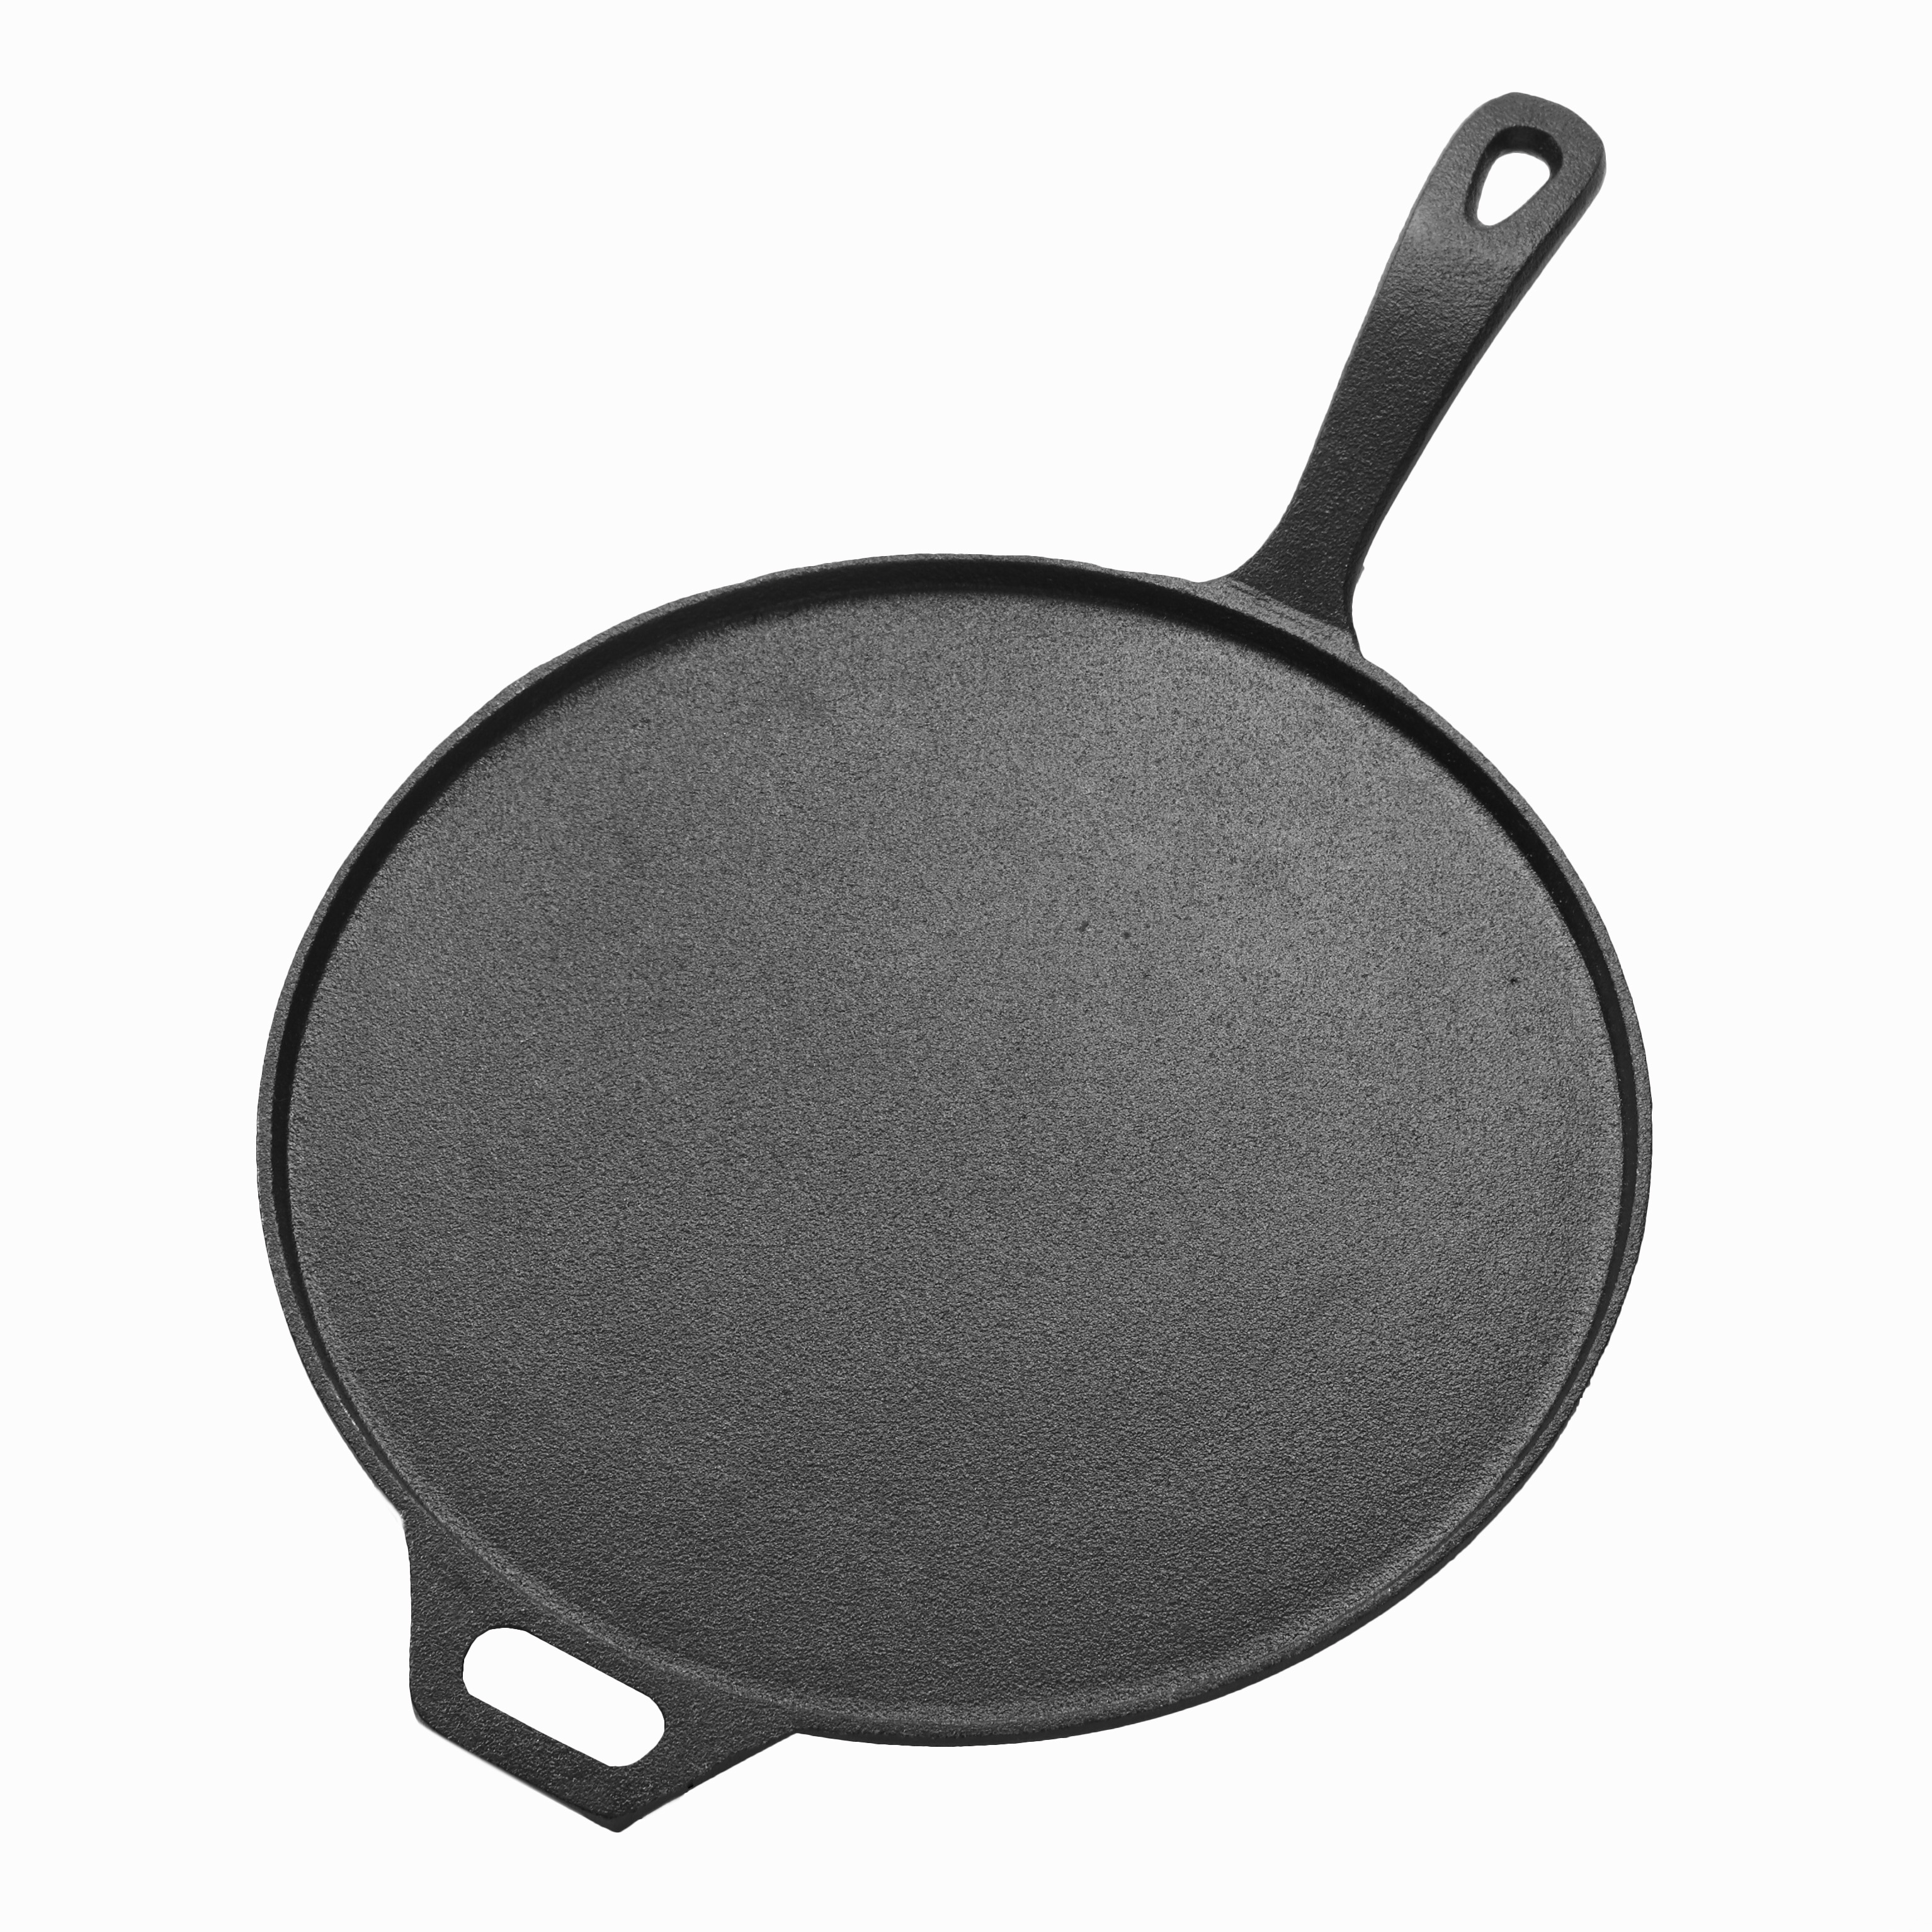 American Metalcraft CILP12 sizzle thermal platter